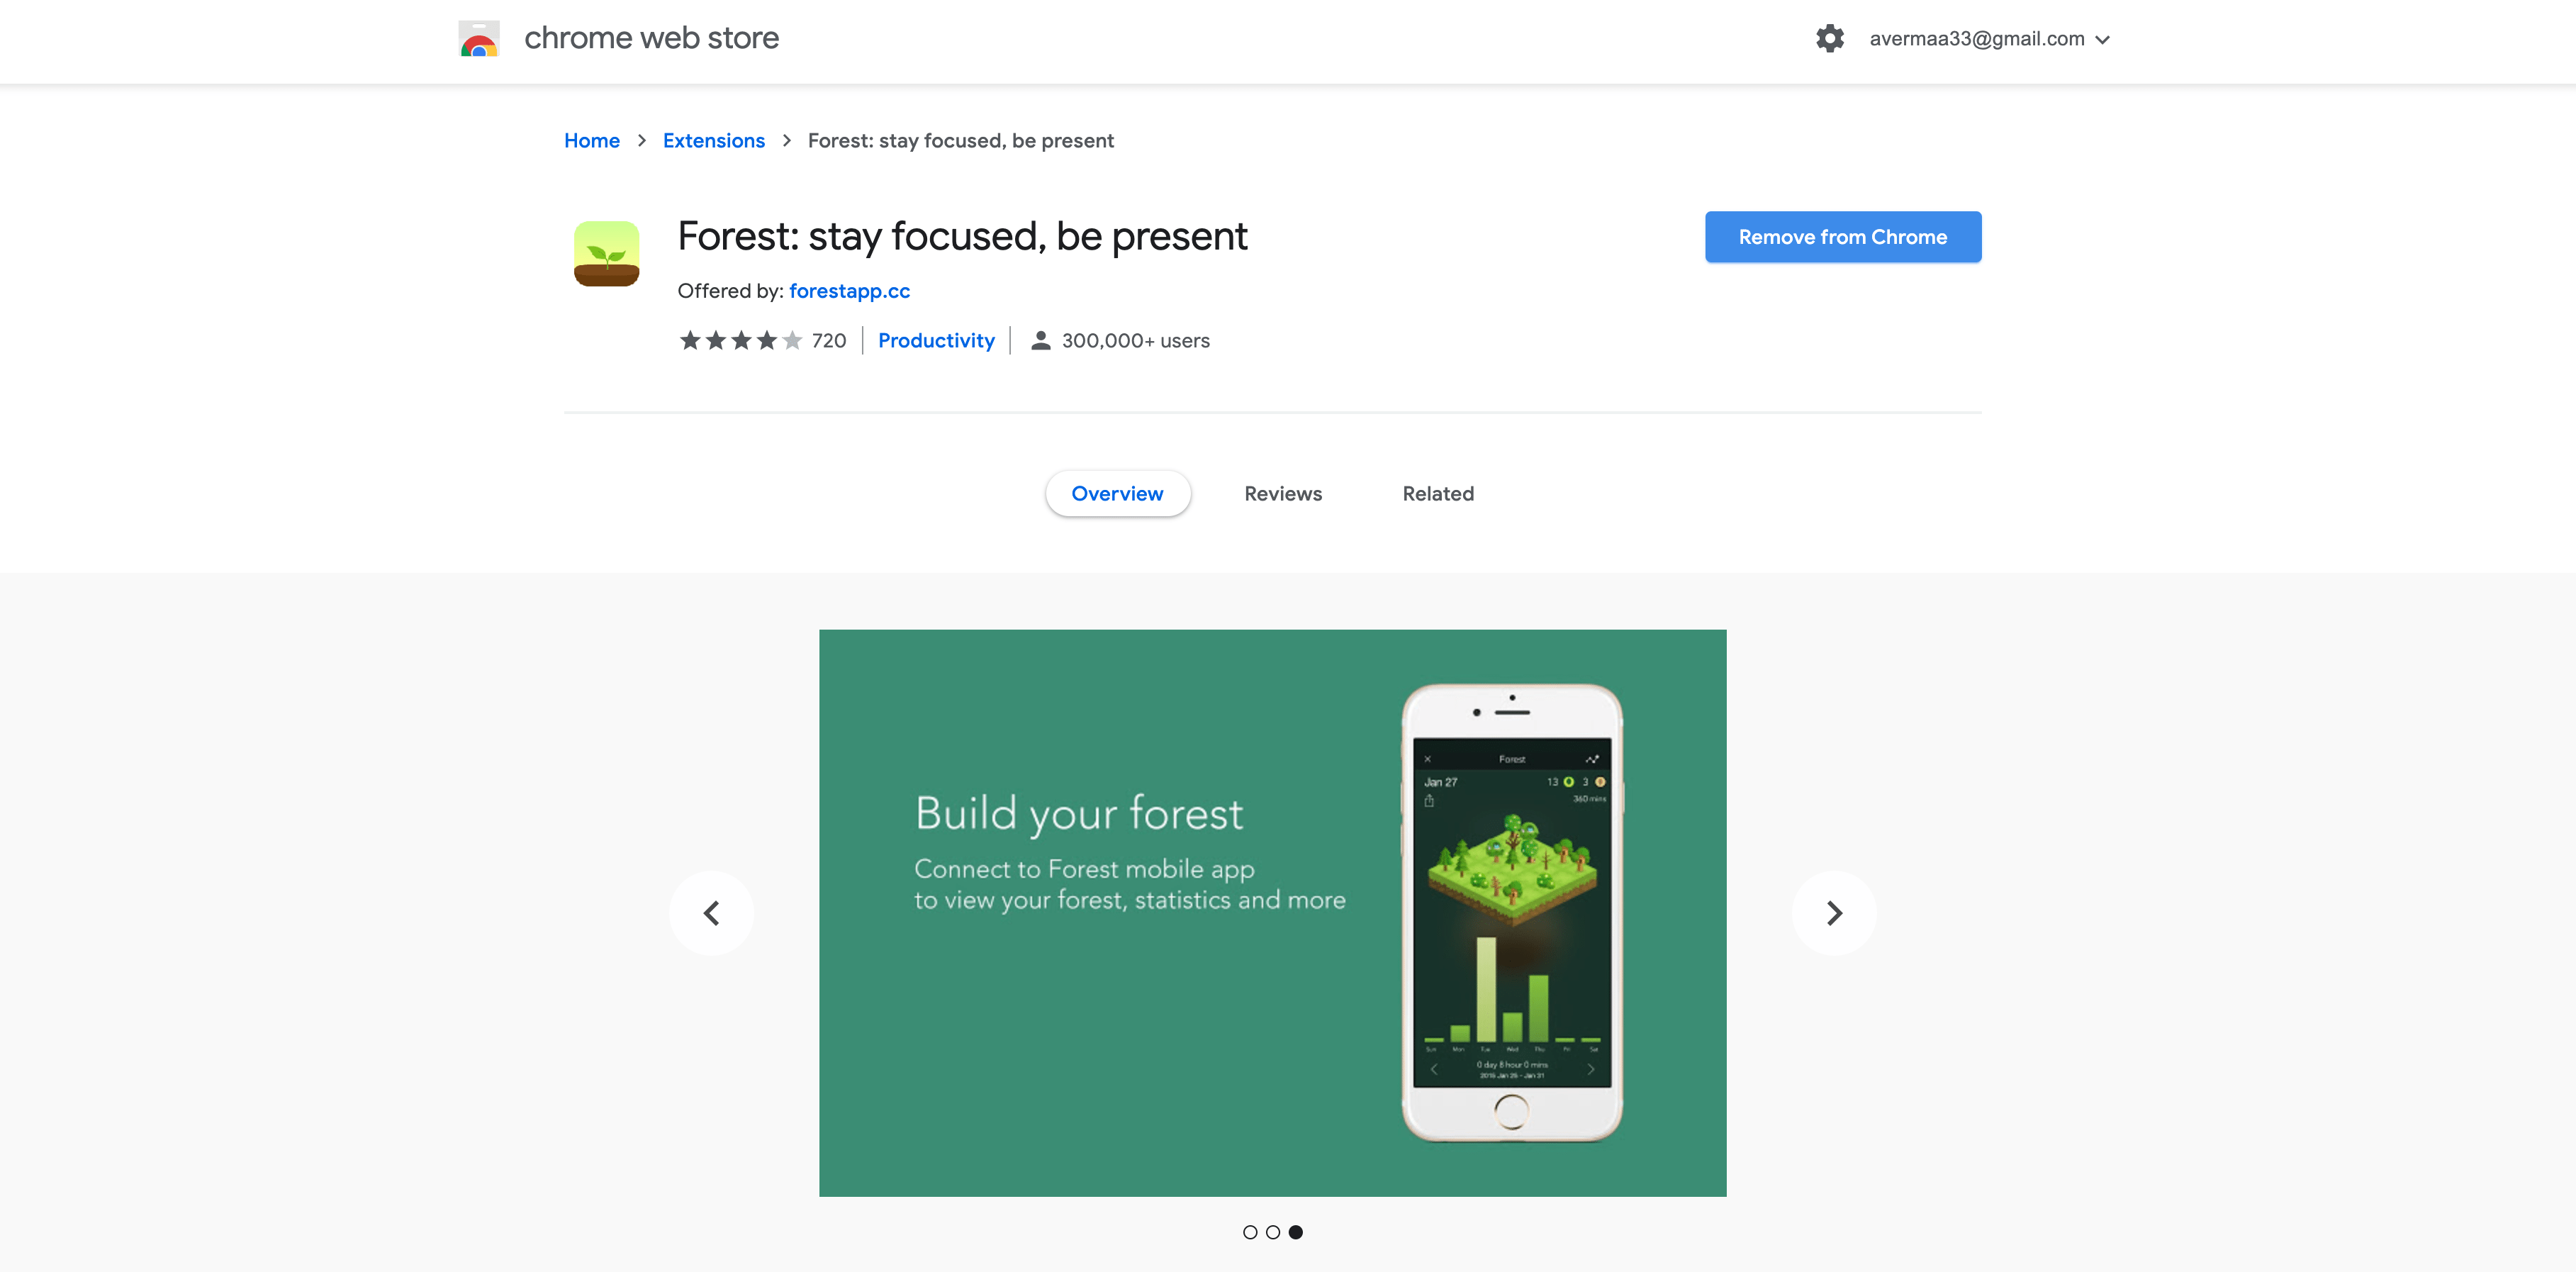 forest-stay-focused-be-prersent-extension